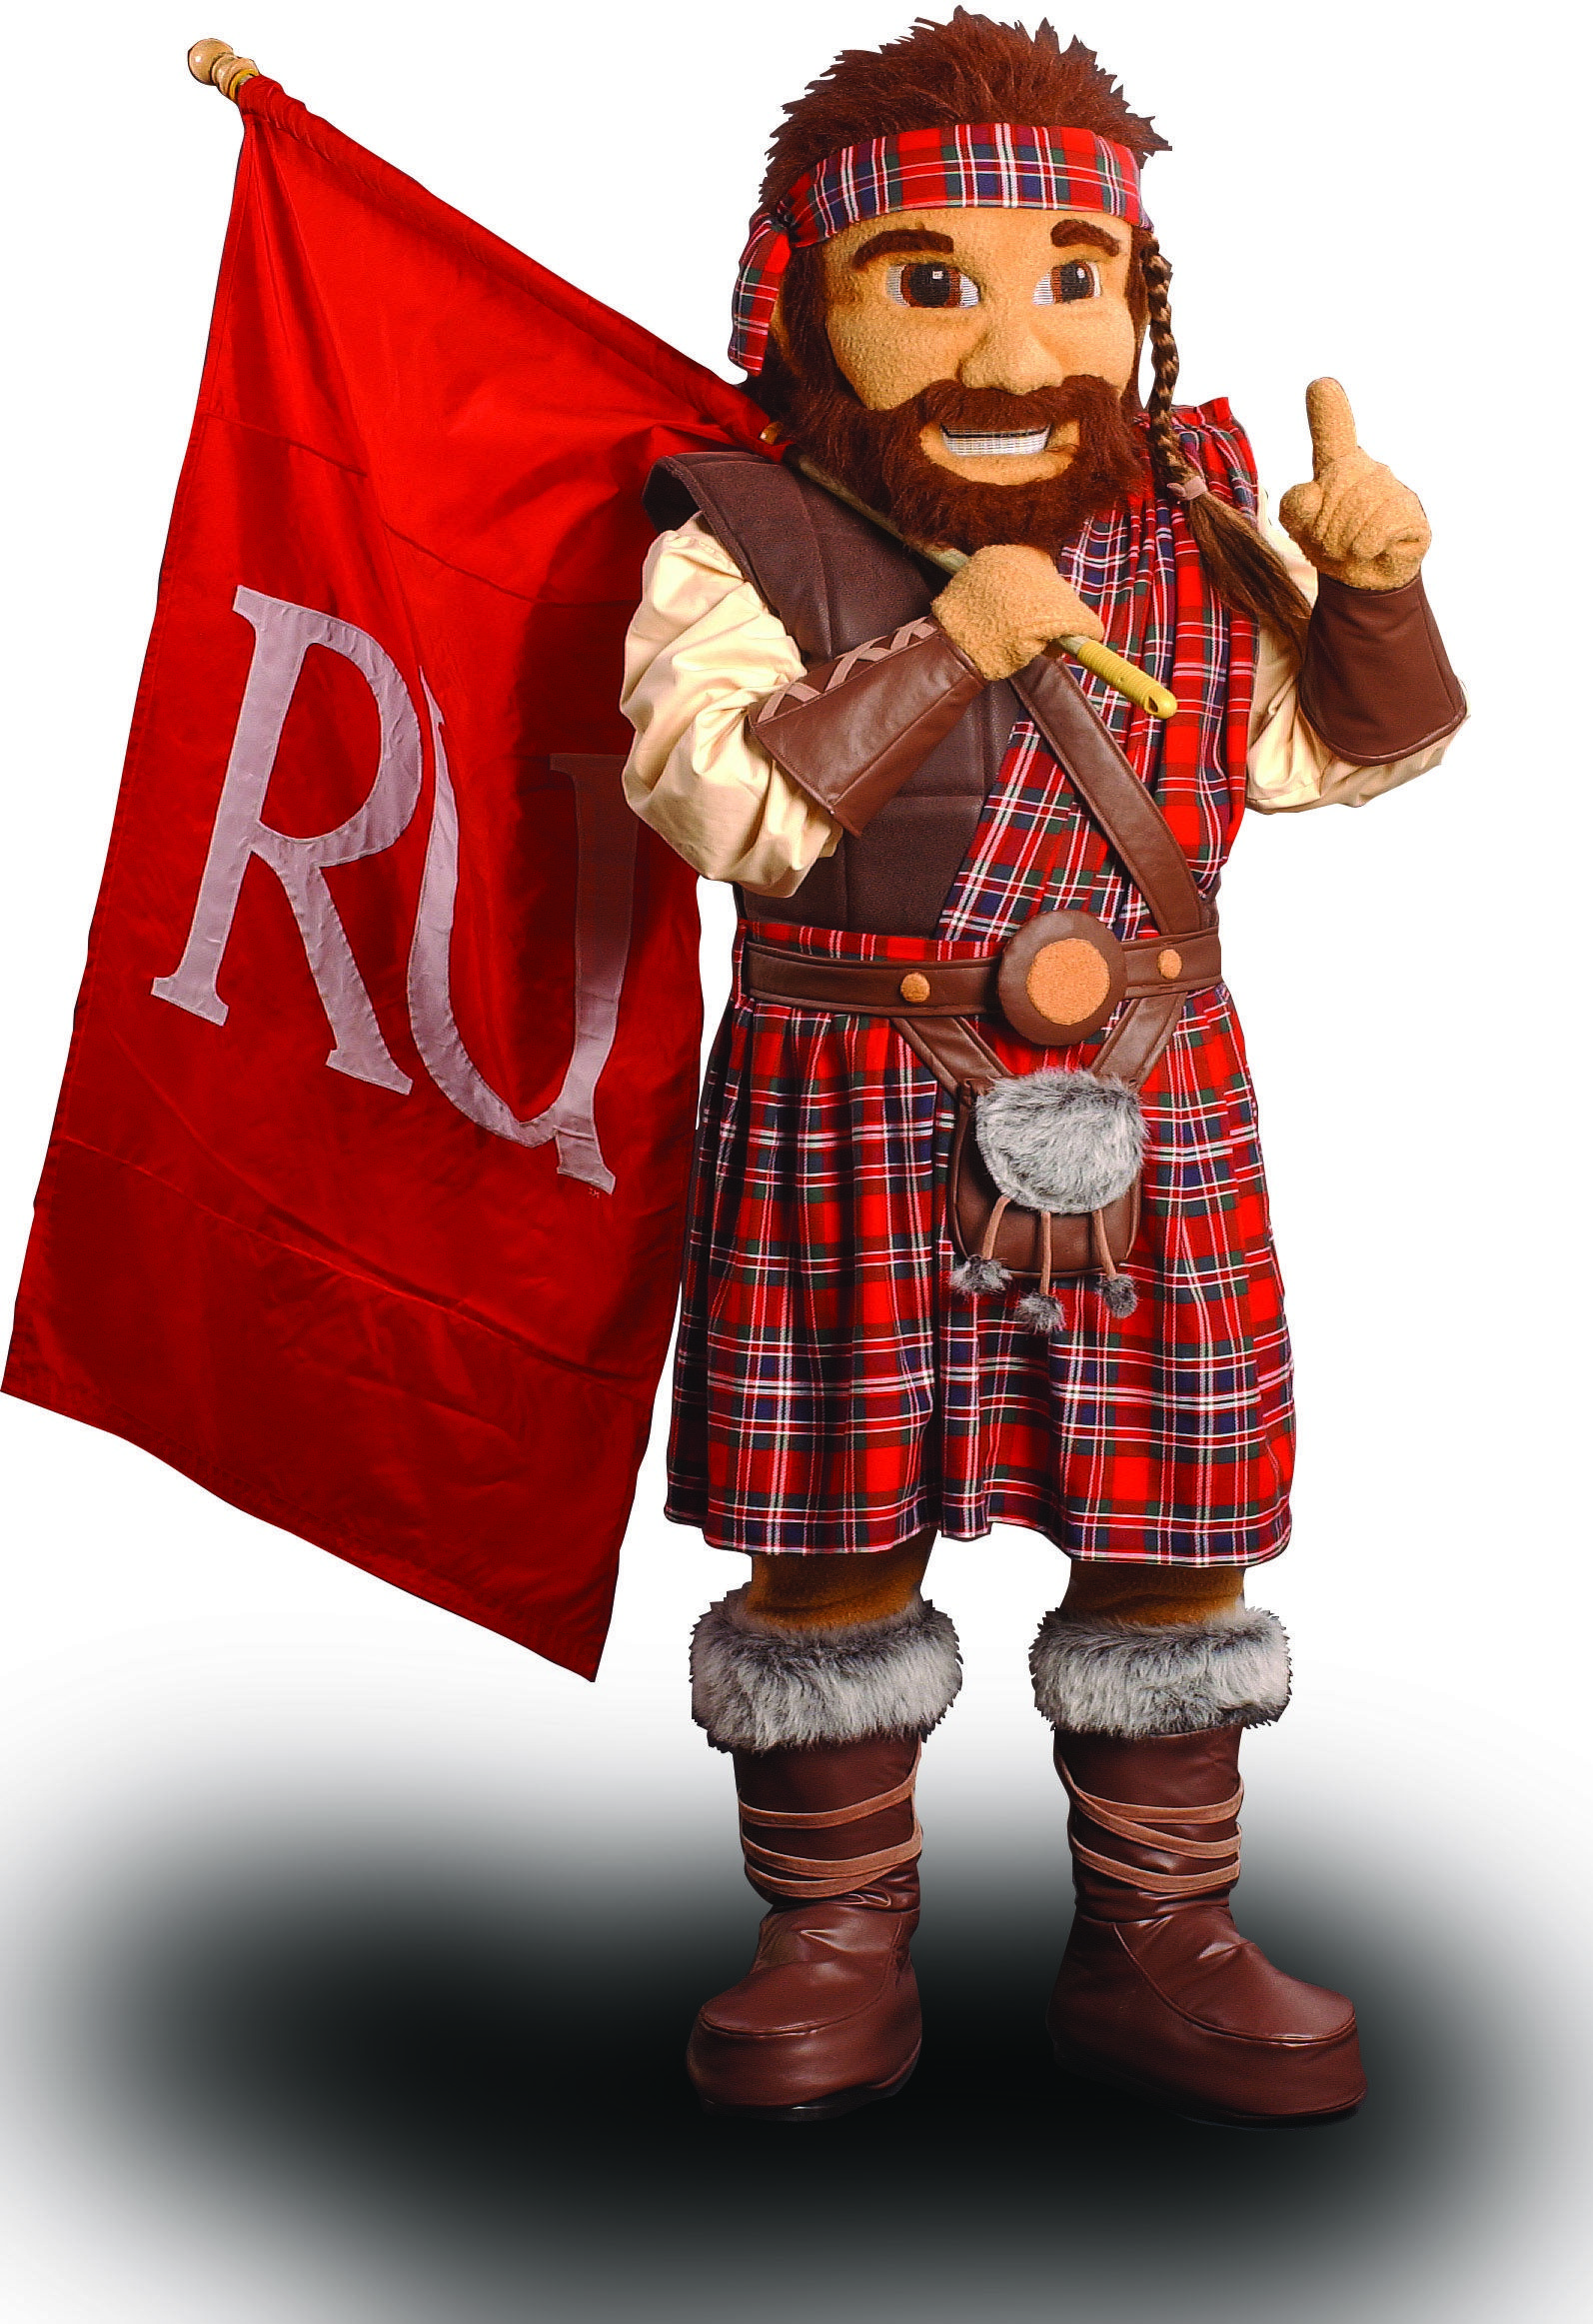 The Highlander is the official mascot of Radford University. Learn more about RU: www.radford.edu